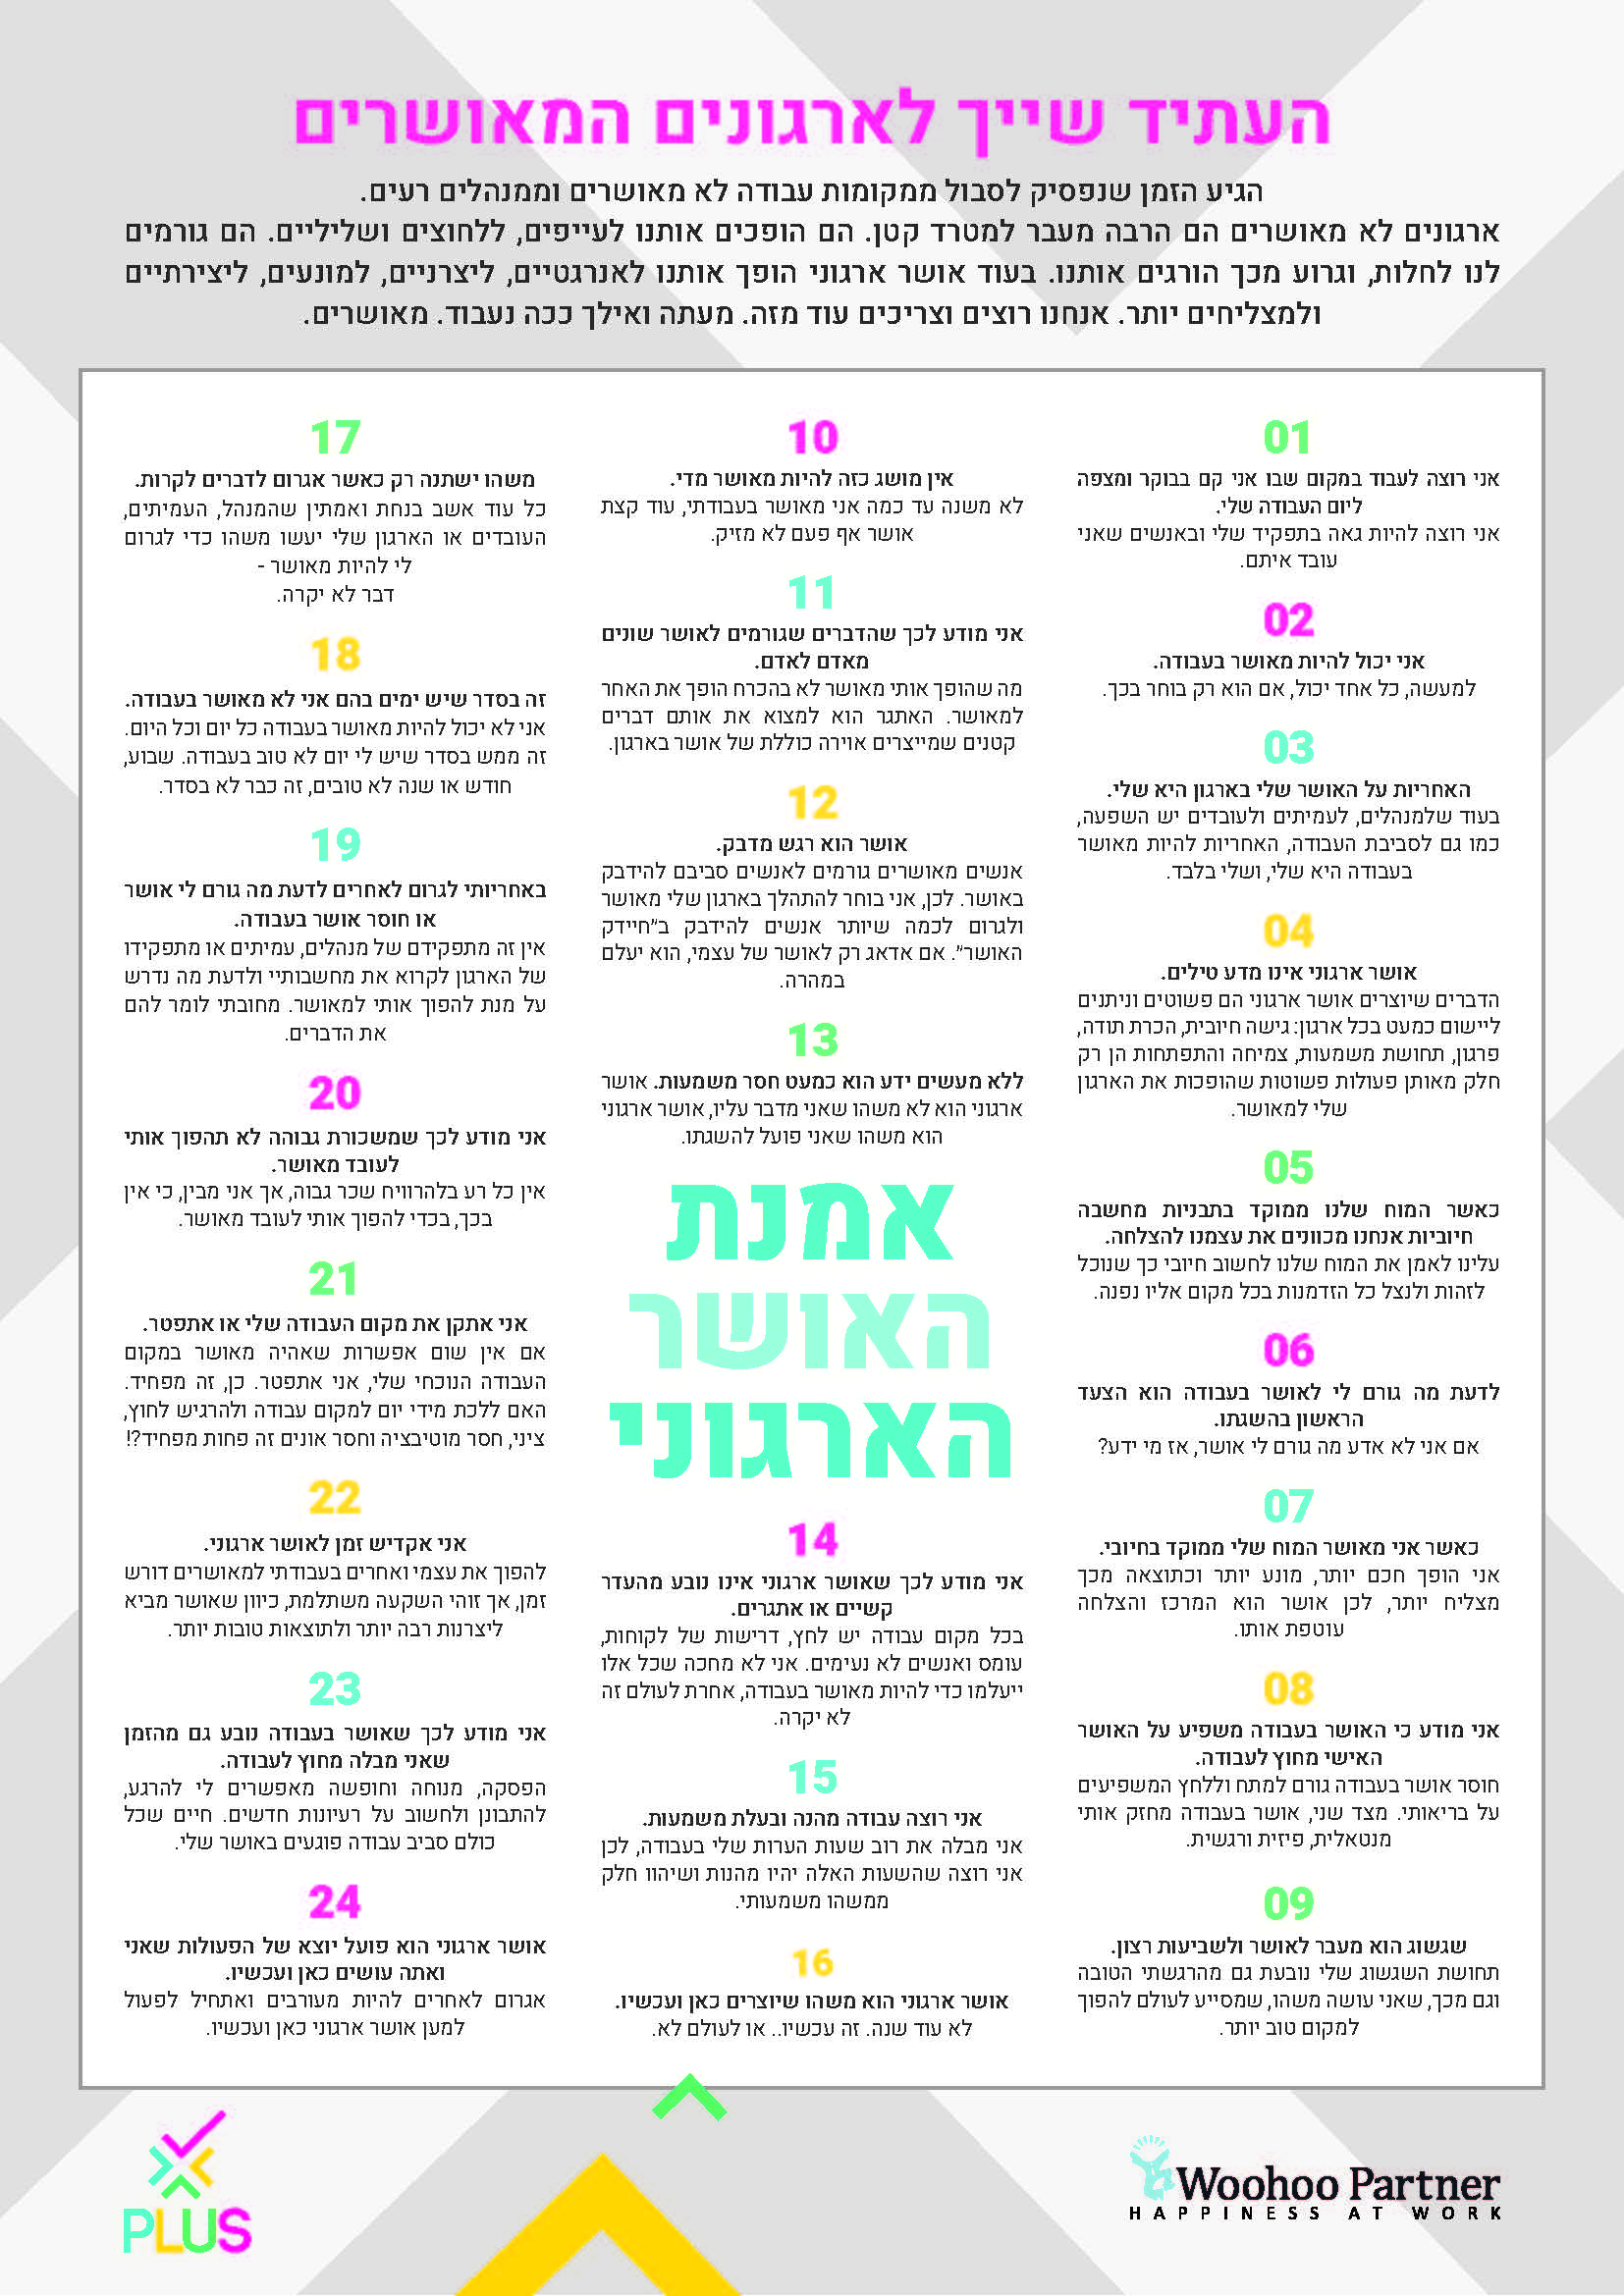 A Happiness at Work Manifesto in Hebrew